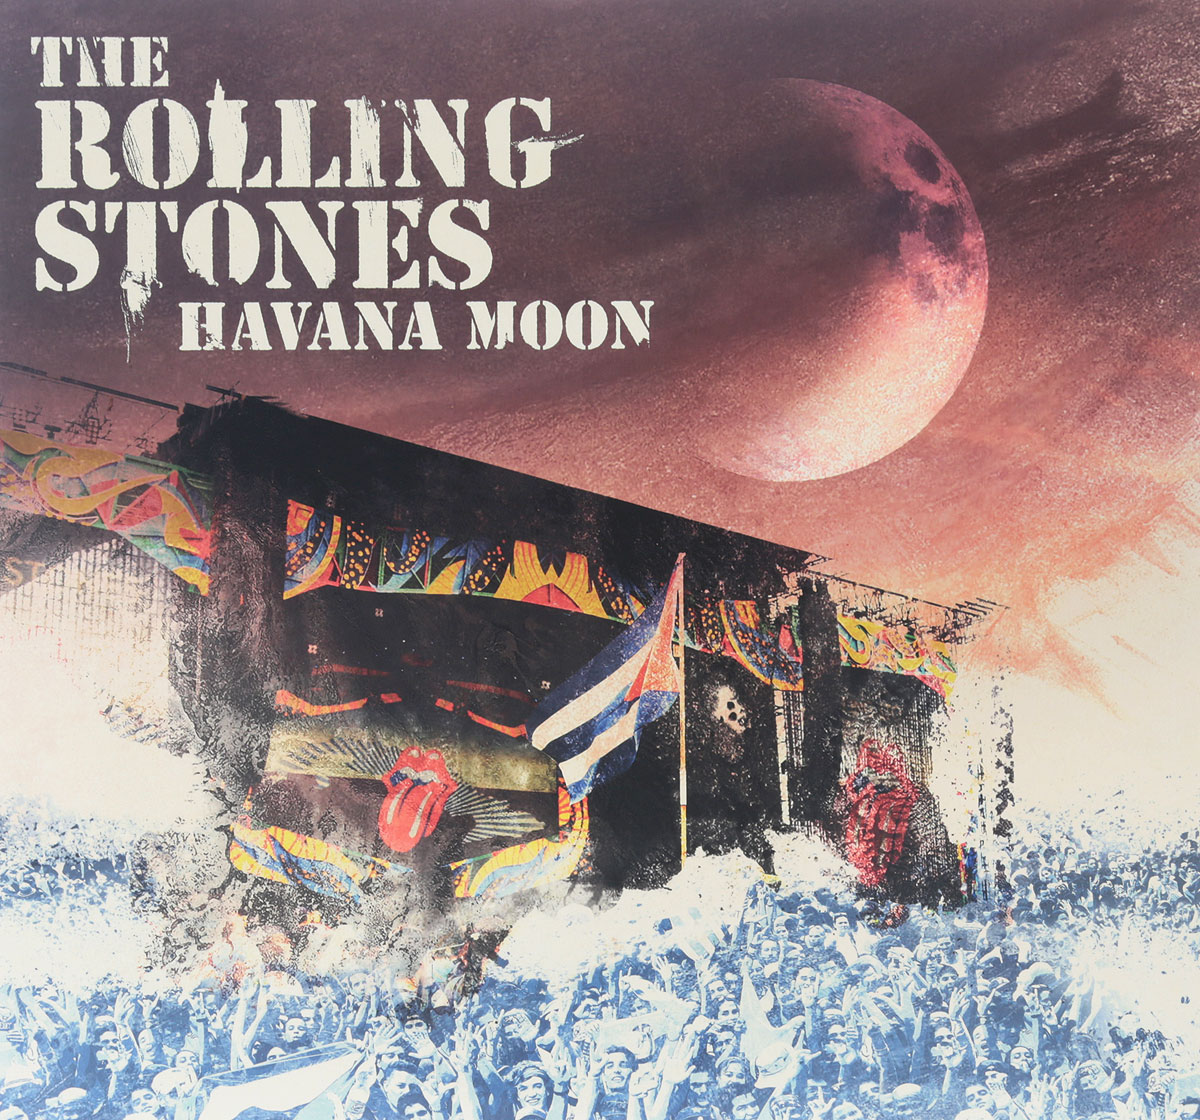 The Rolling Stones The Rolling Stones. Havana Moon (2 LP + DVD) sympathy